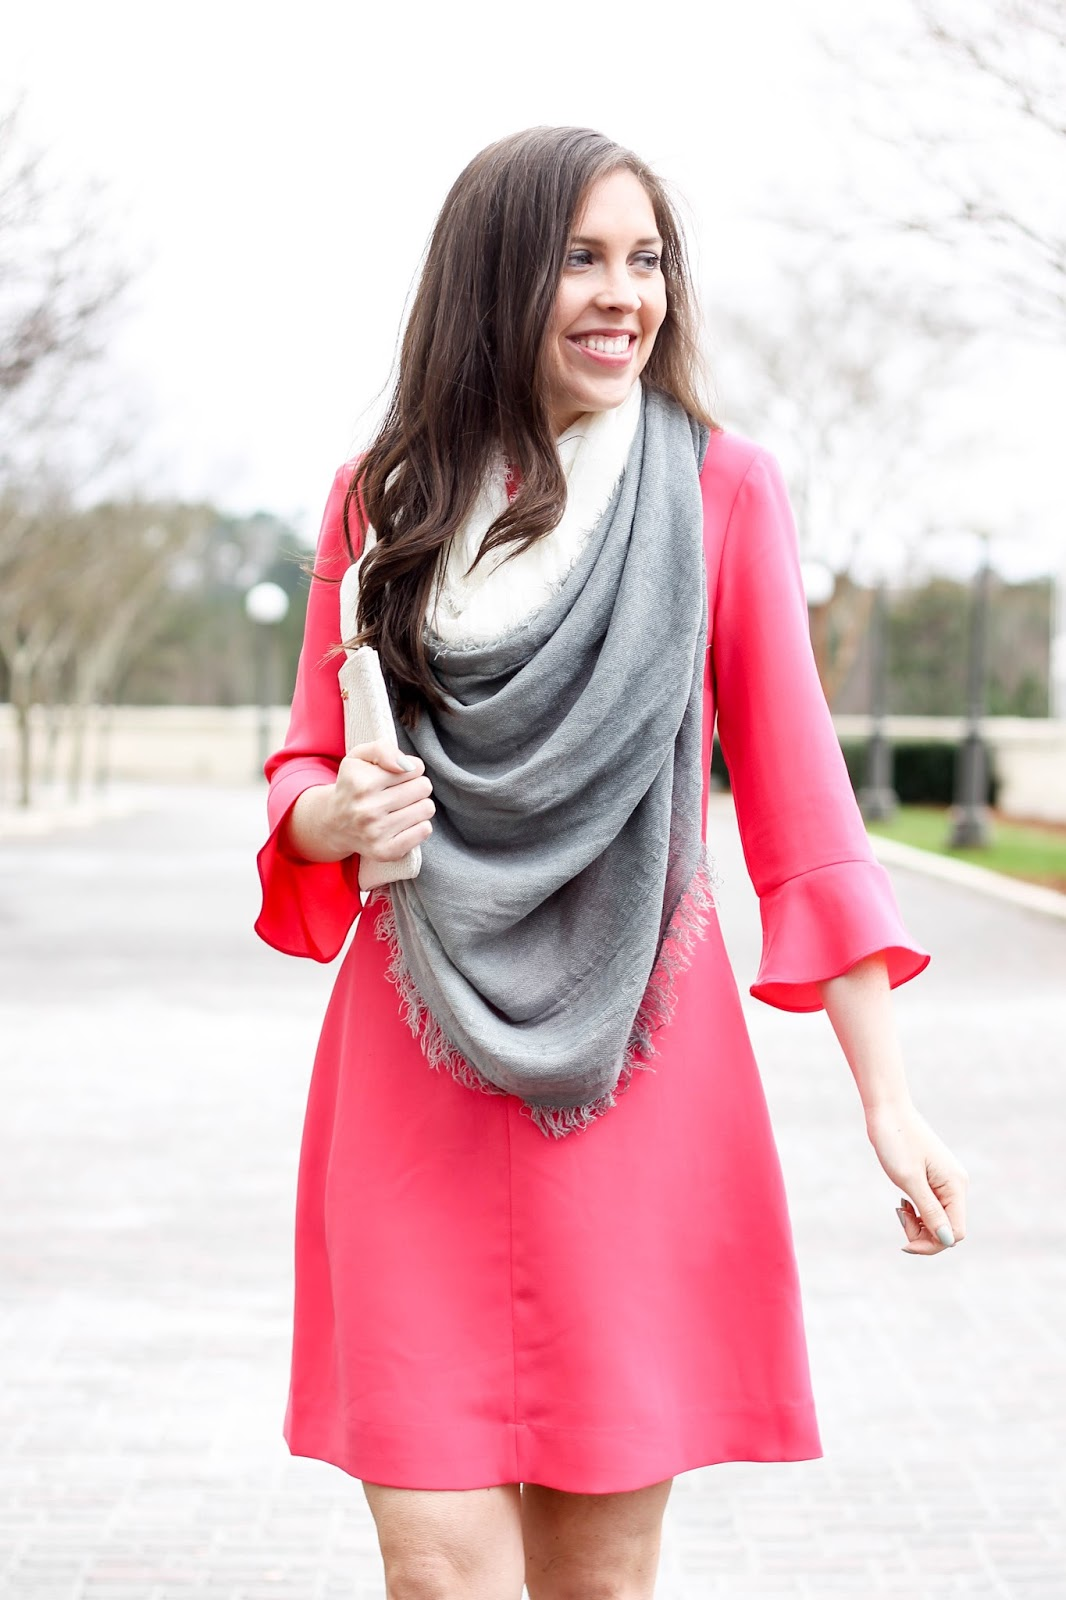 Spring Outfit Ideas, Spring Dress, Preppy Spring Dress with Ruffle Sleeves, Flutter Sleeve Dress, Banana Republic, GiGi New York All in One in white, Loft ombre scarf, fashion blogger, spring trends, pretty in the pines blog, shelby vanhoy